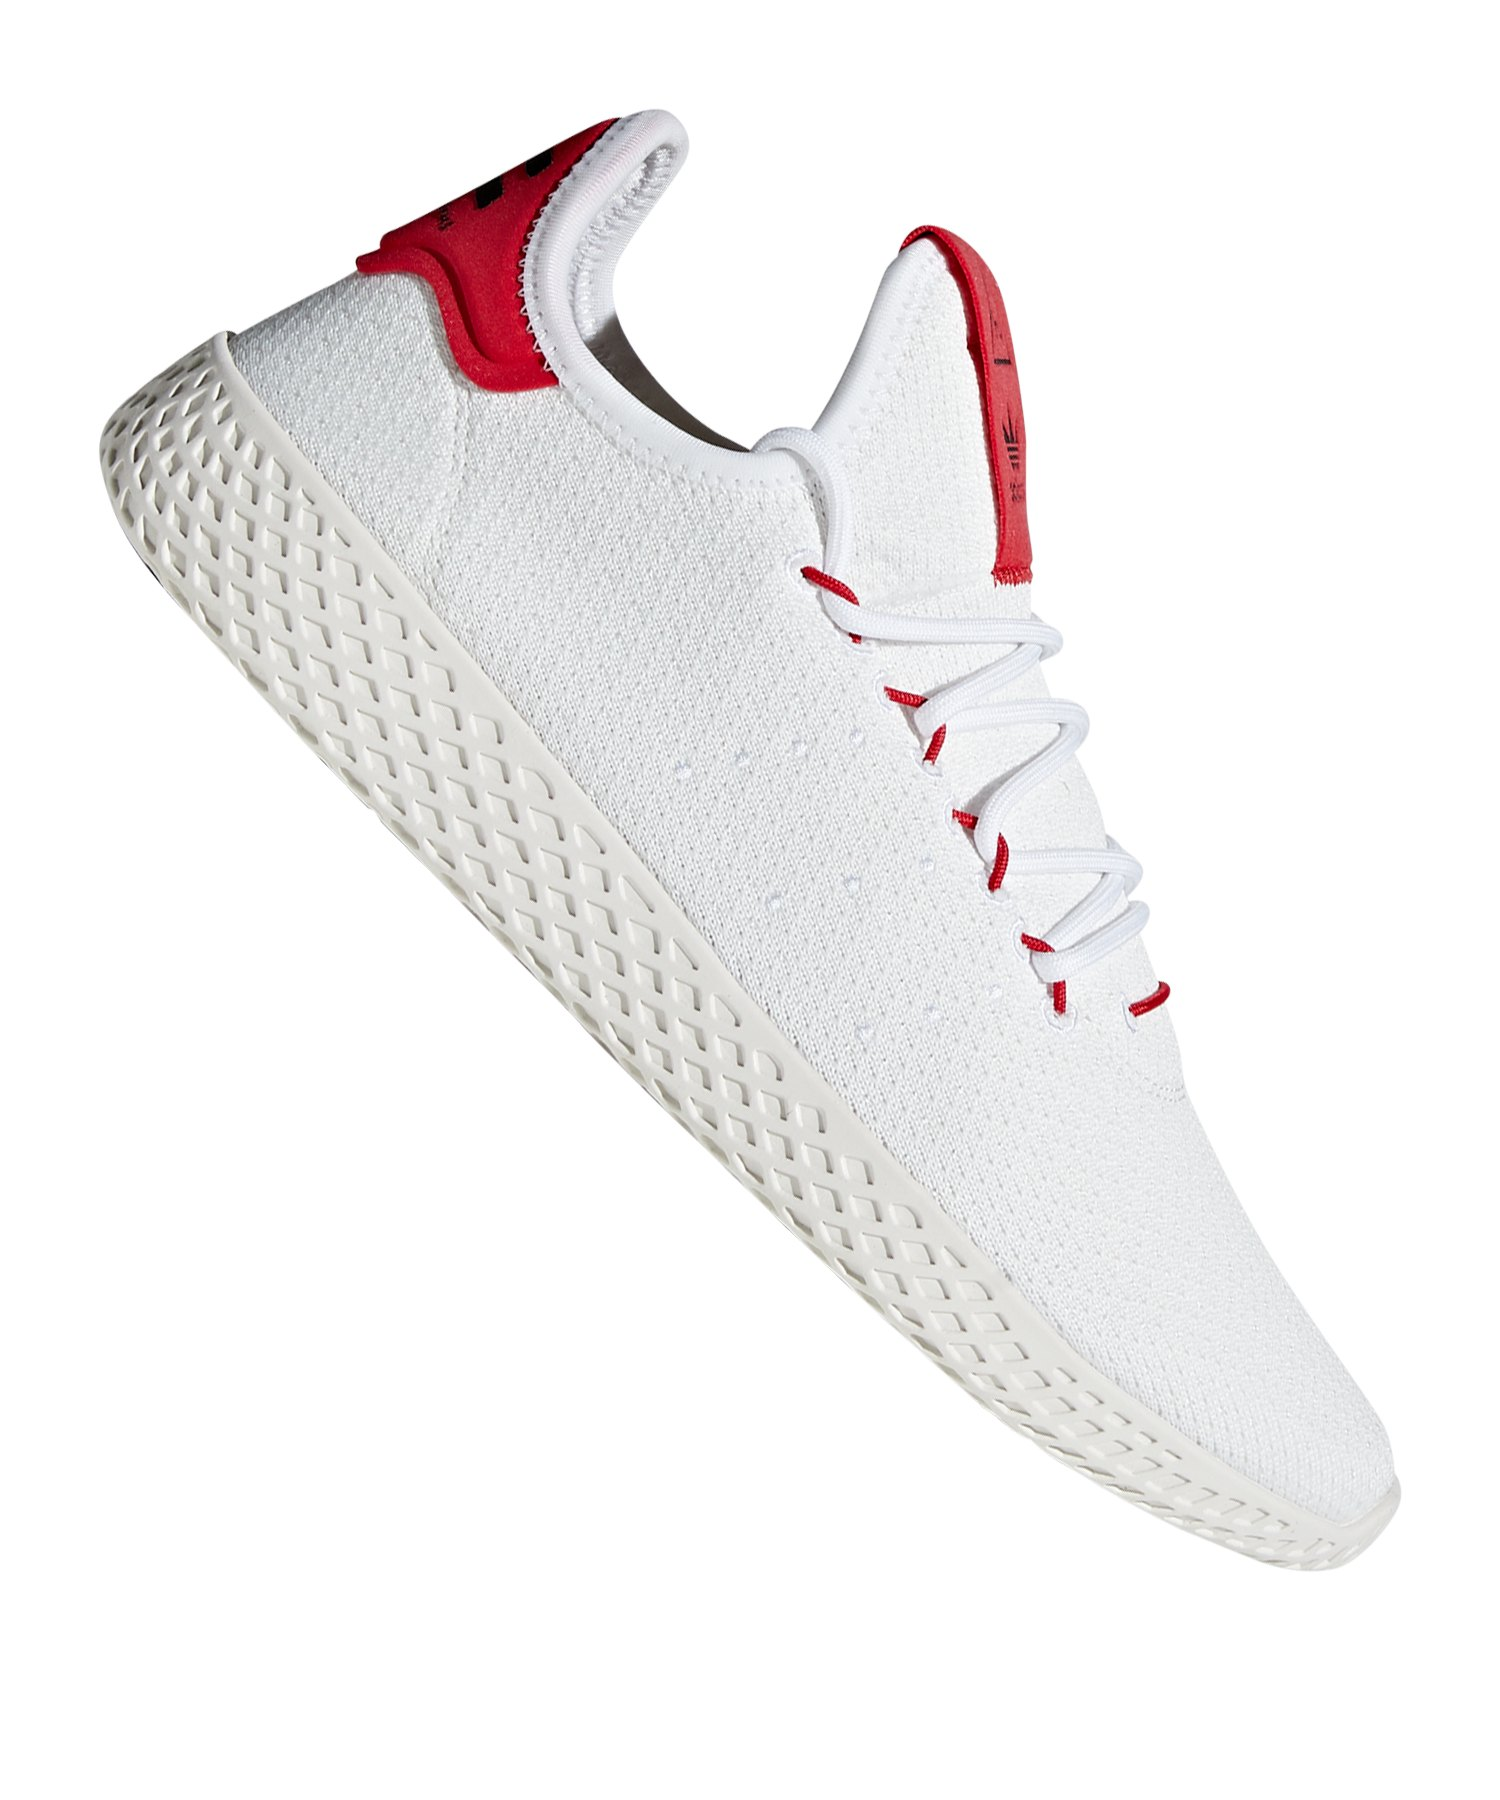 adidas Originals PW Tennis HU Sneaker Weiss Rot